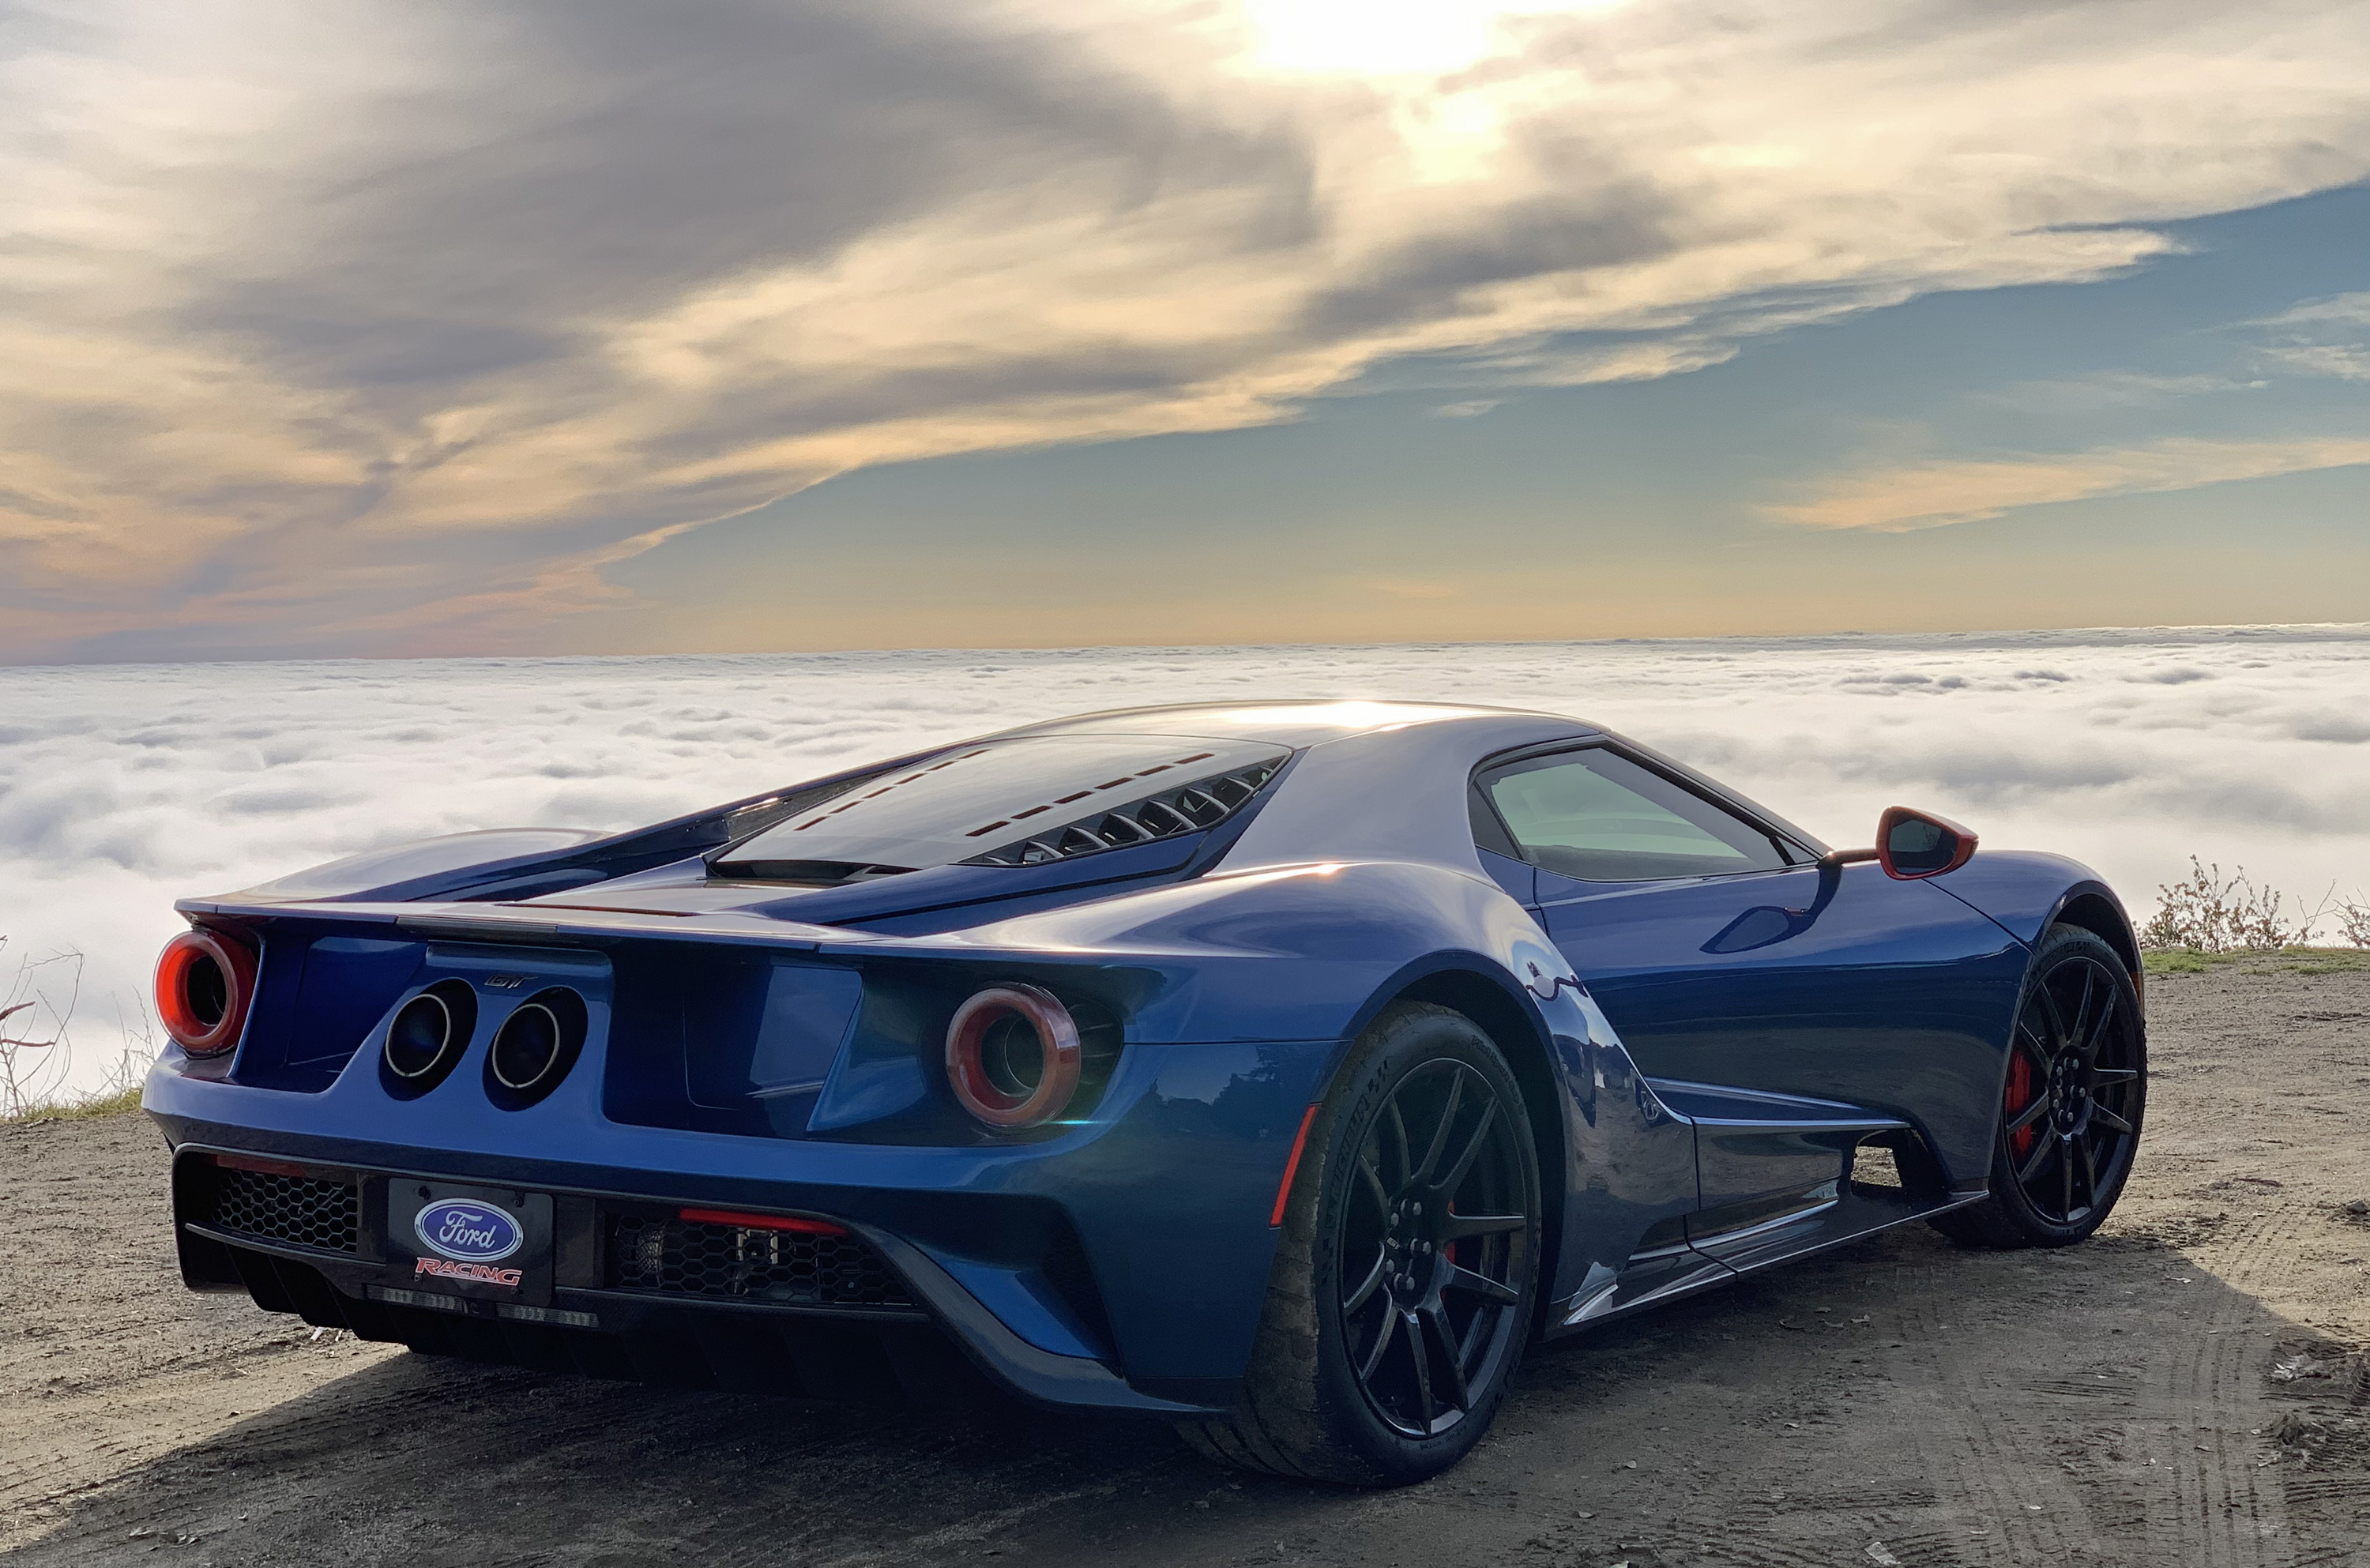 2019 Ford GT Carbon Series Palomar Clouds